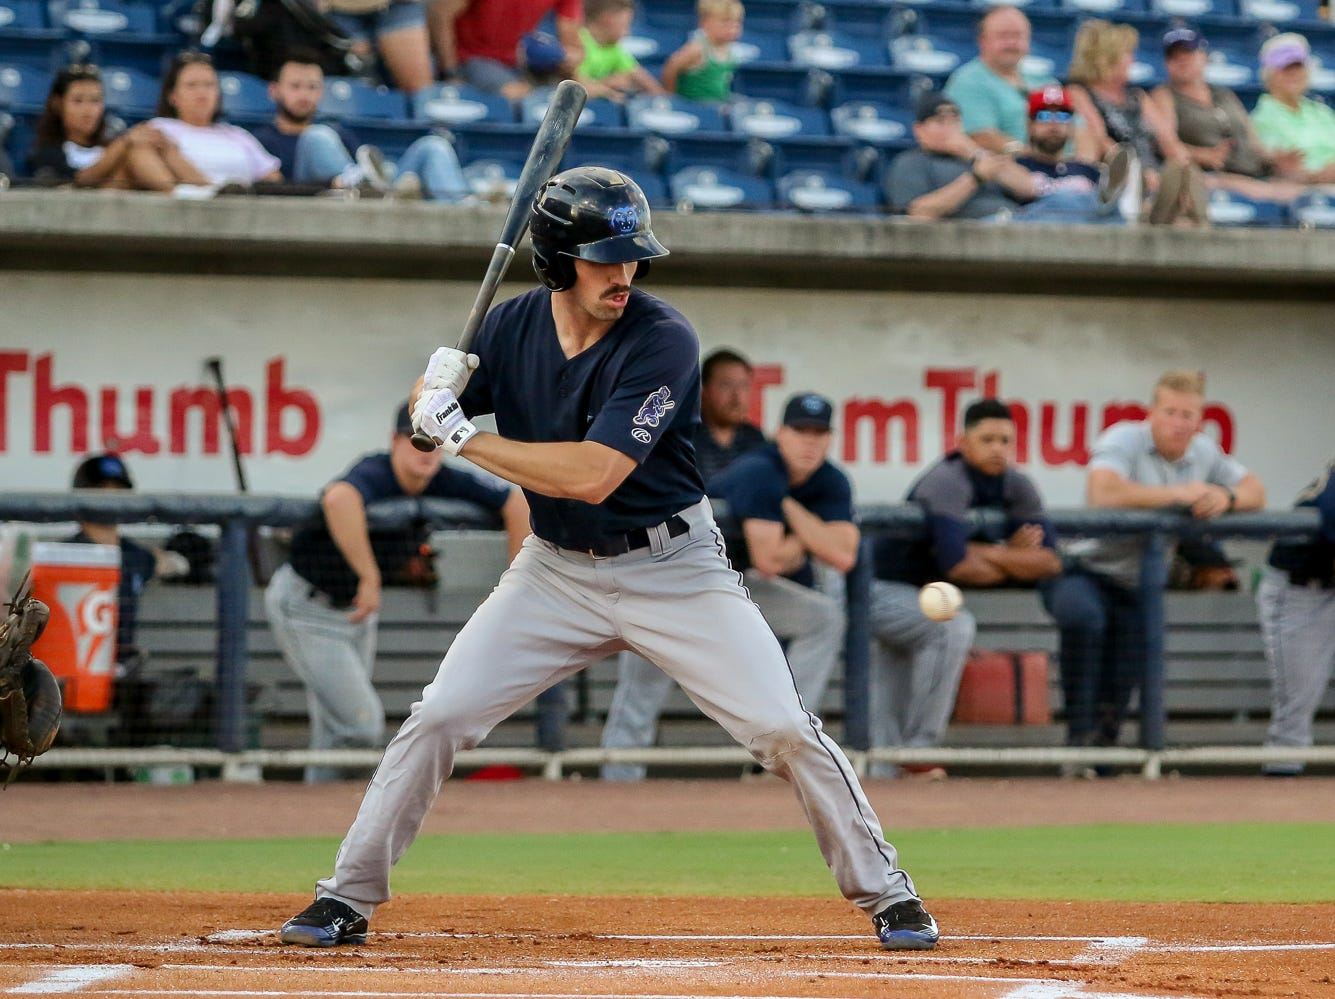 Mobile's Brandon Sandoval (21) gets caught looking as a strike thrown by Pensacola pitcher Wyatt Strahan flies by him during the Blue Wahoos' last home game of the regular season on Tuesday, August 28, 2018.